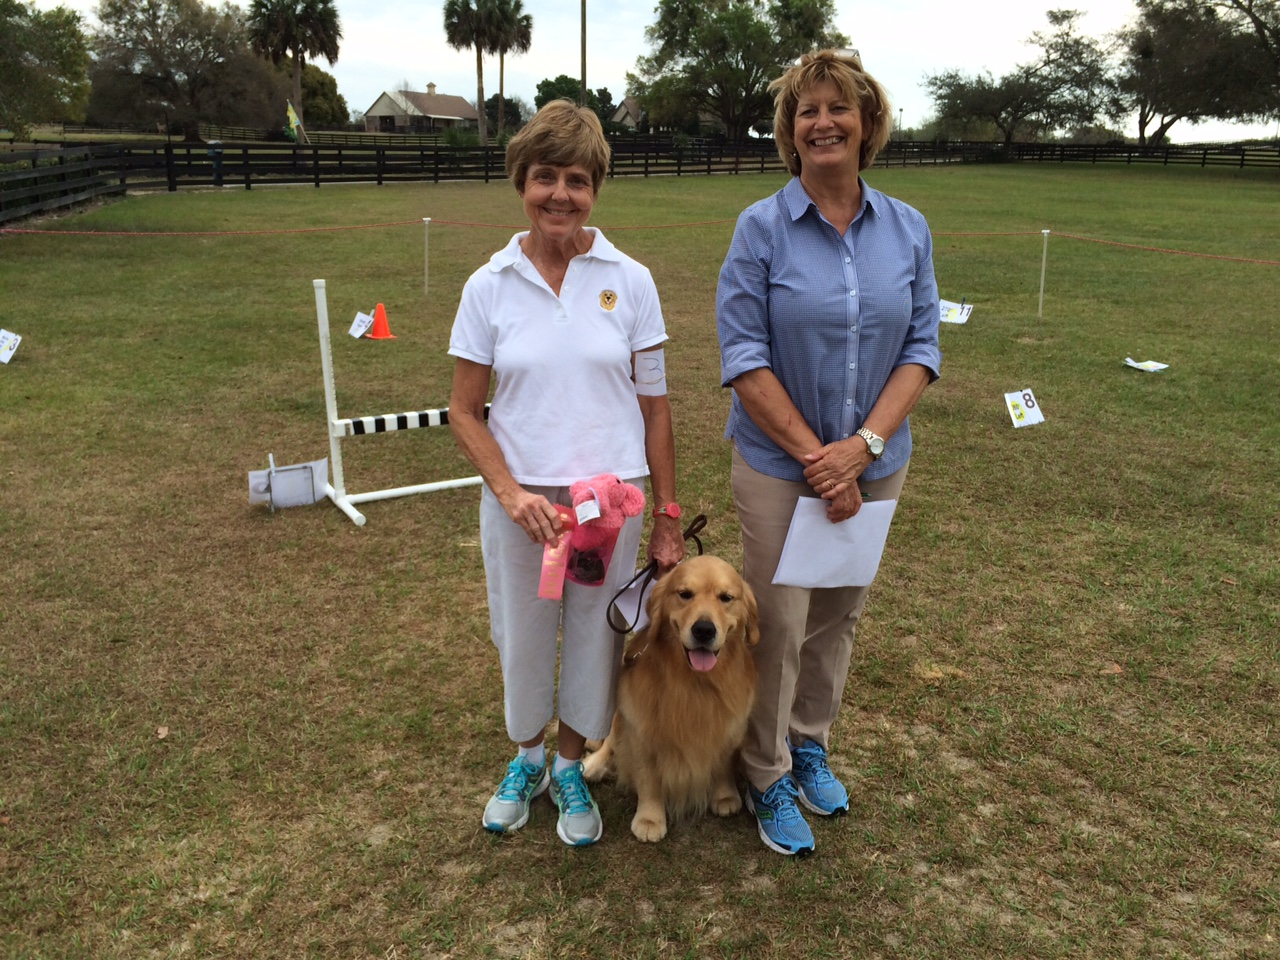 Ann Rowe with her Golden Retriever Mogul (CH Magik's Ice on the Slopes). Judge Ellen Barktus (right).